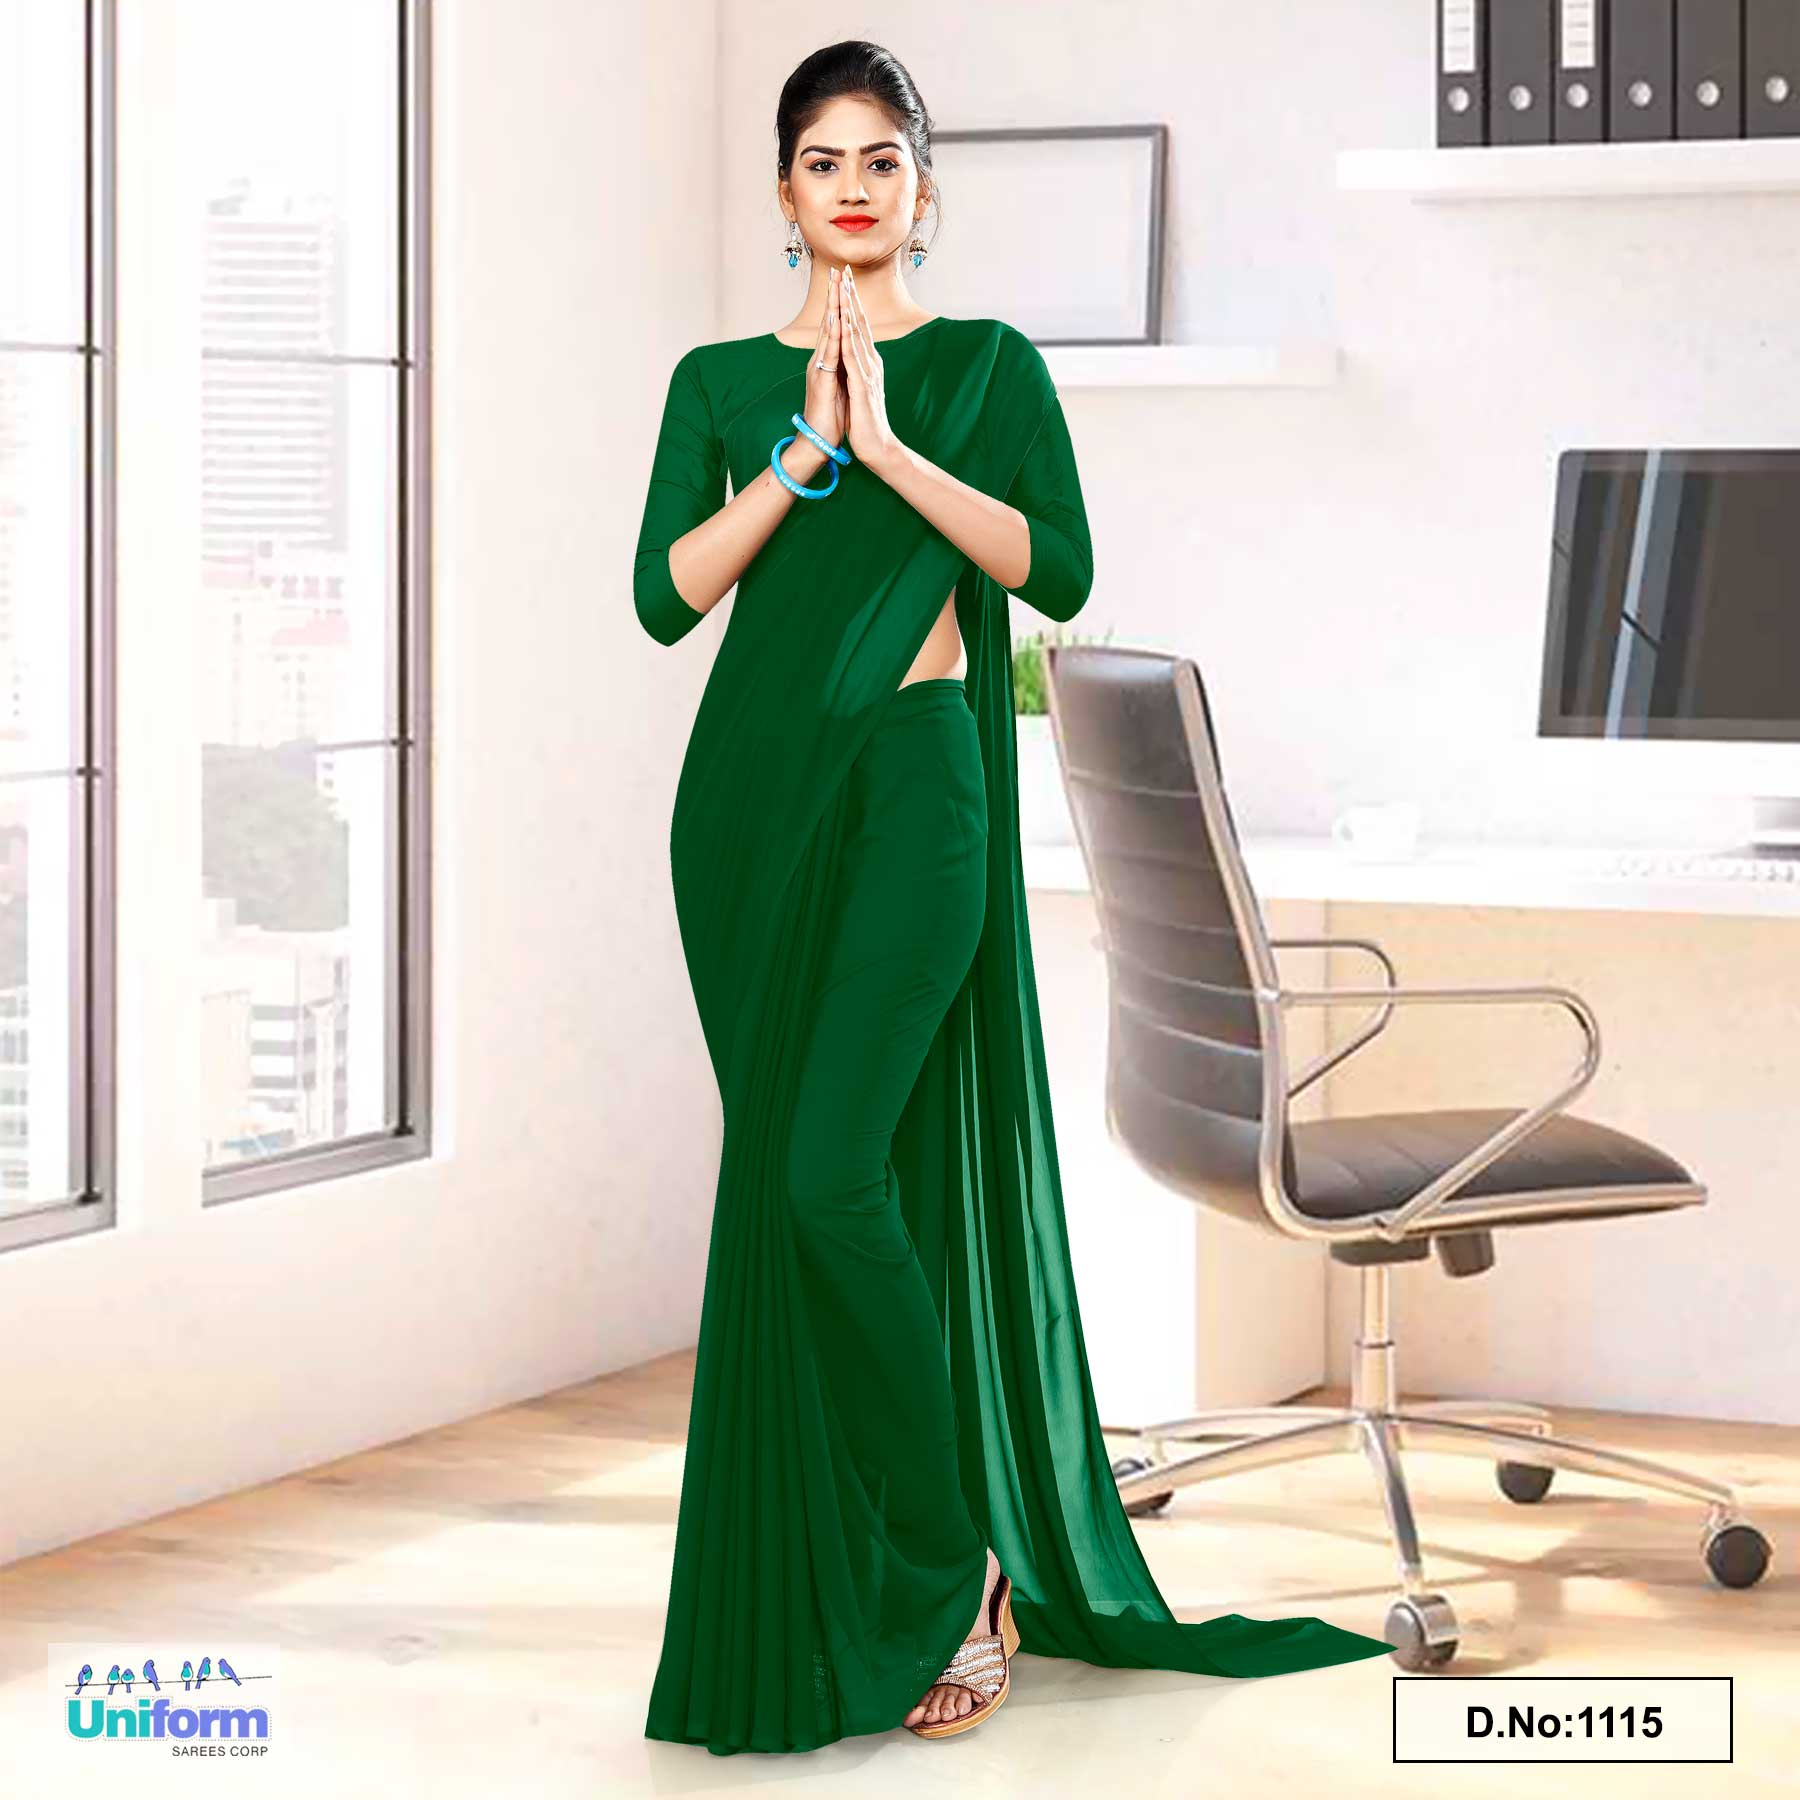 Bottle Green Soft Georgette Plain Uniform Sarees For School Lady Peons